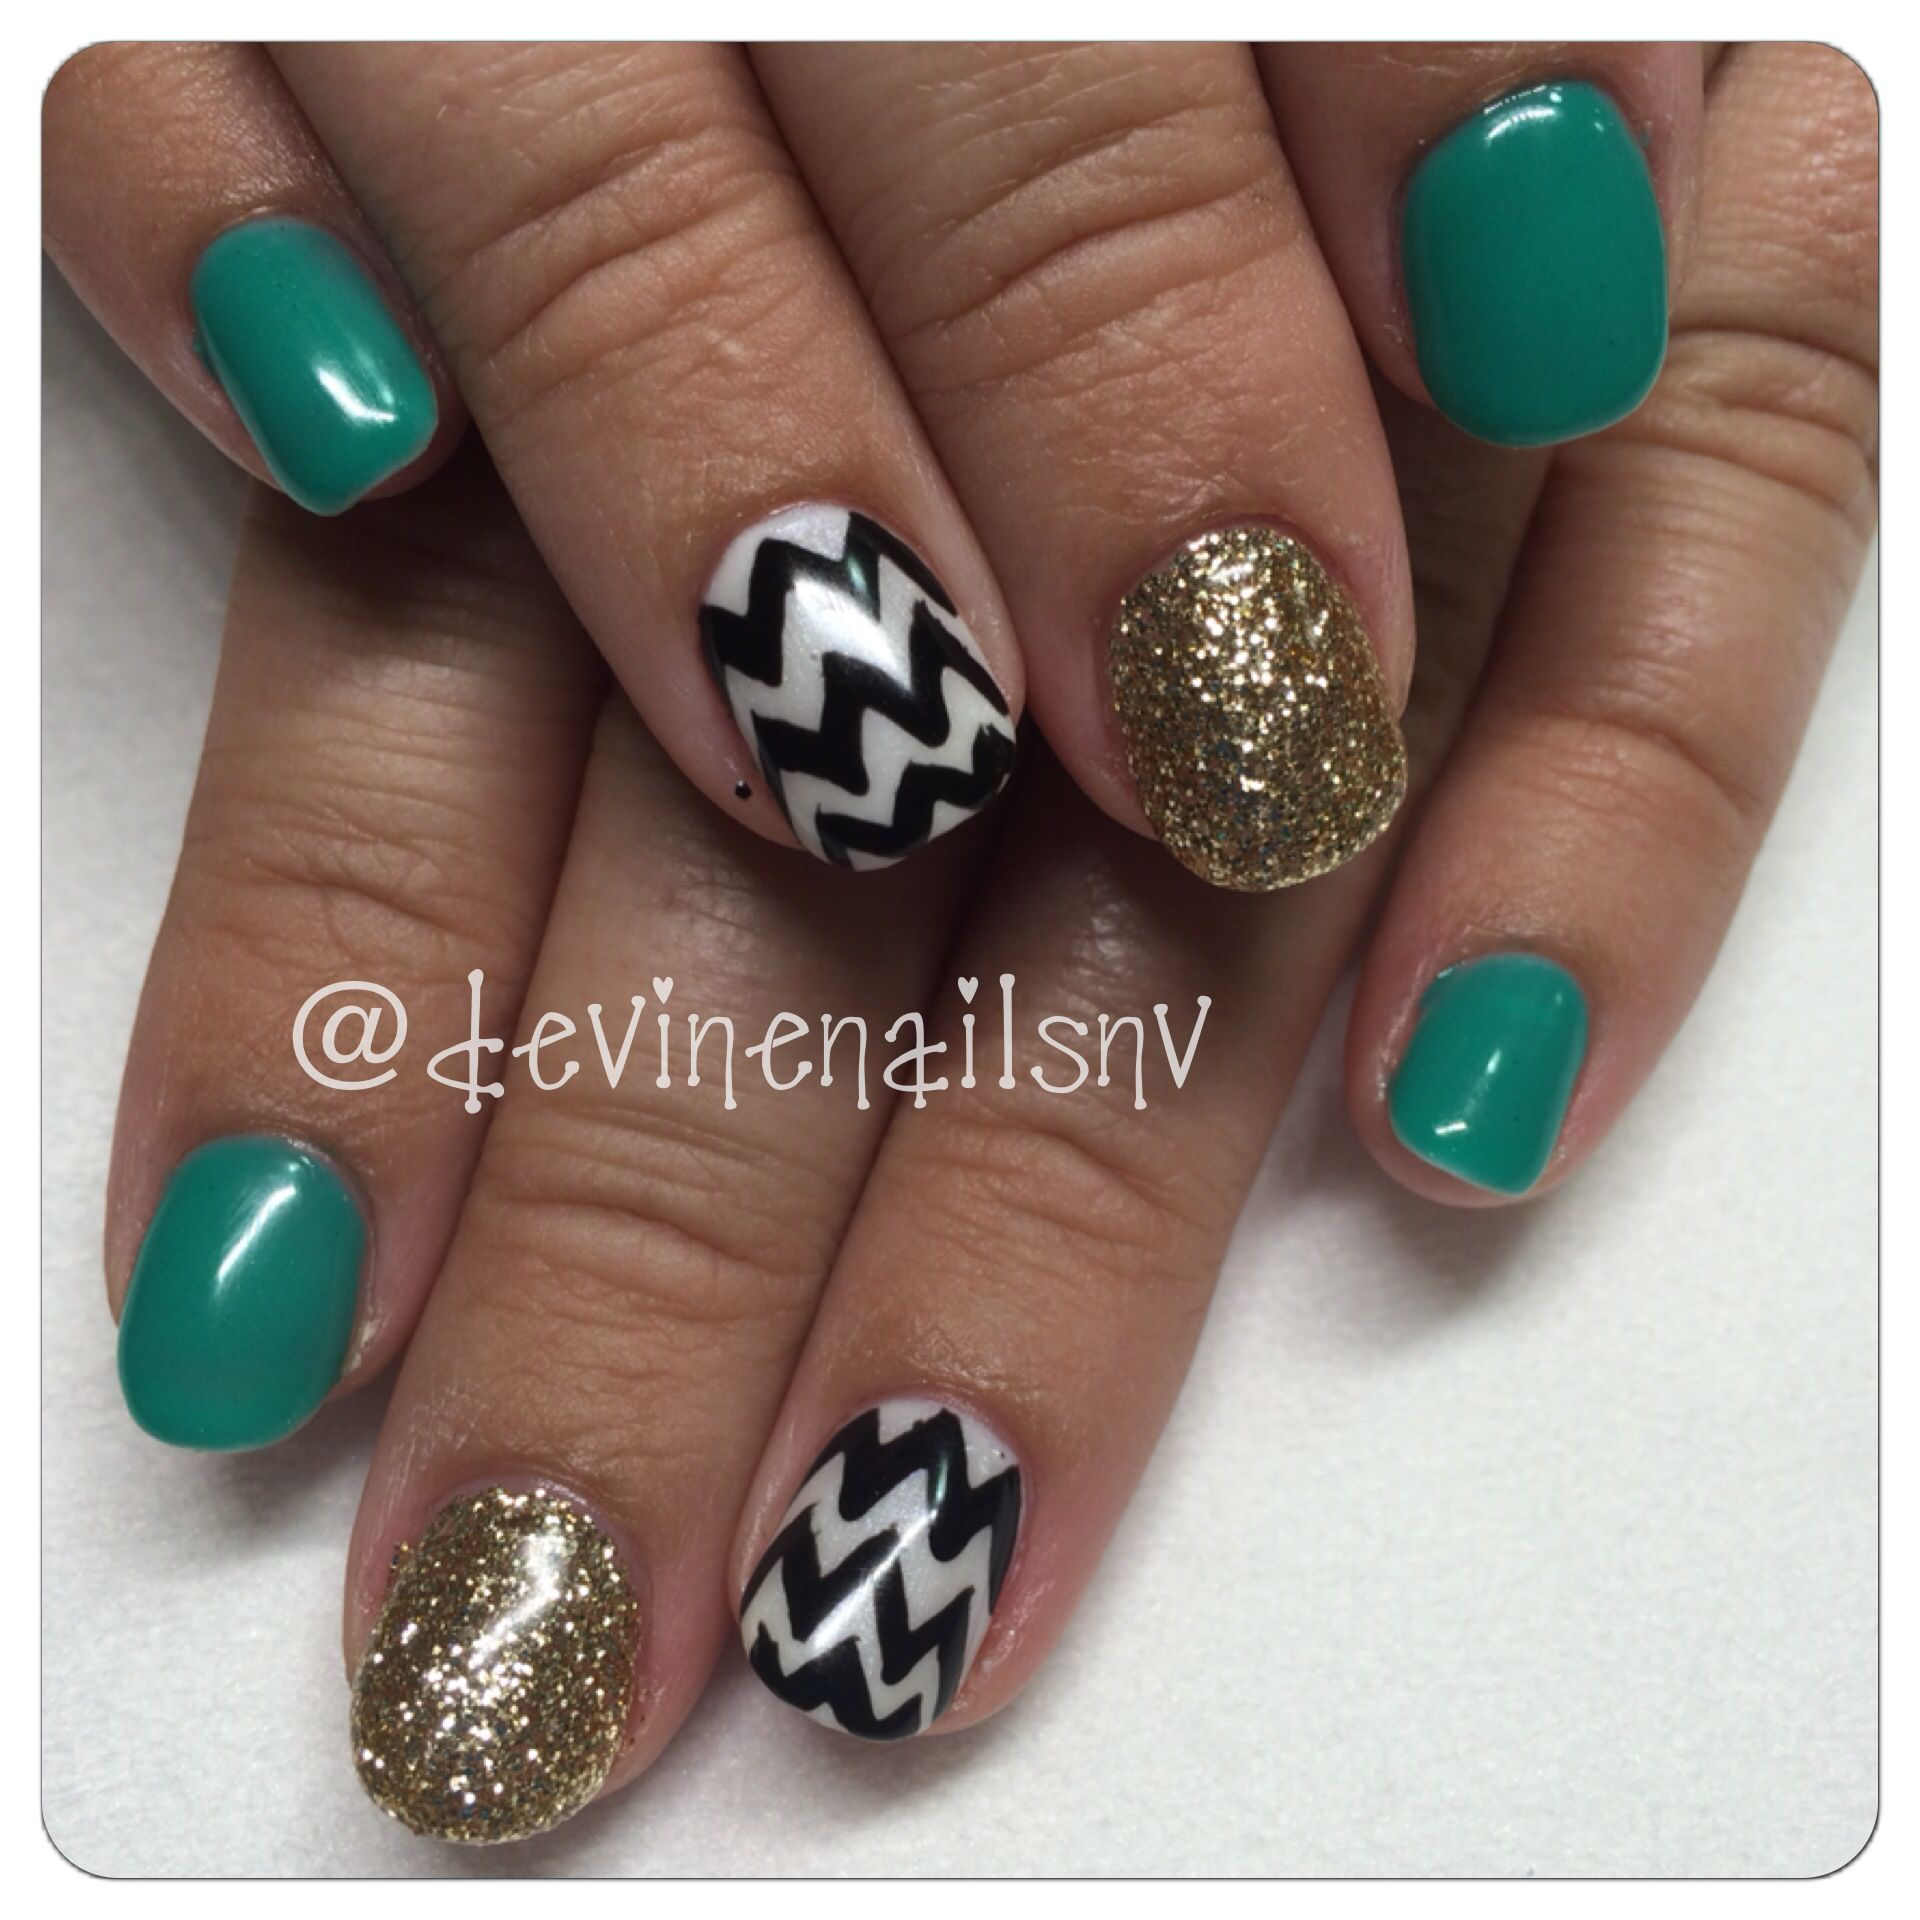 Teal, gold glitter, and black and white chevron print gel nails 2014 @Chelsea Devine